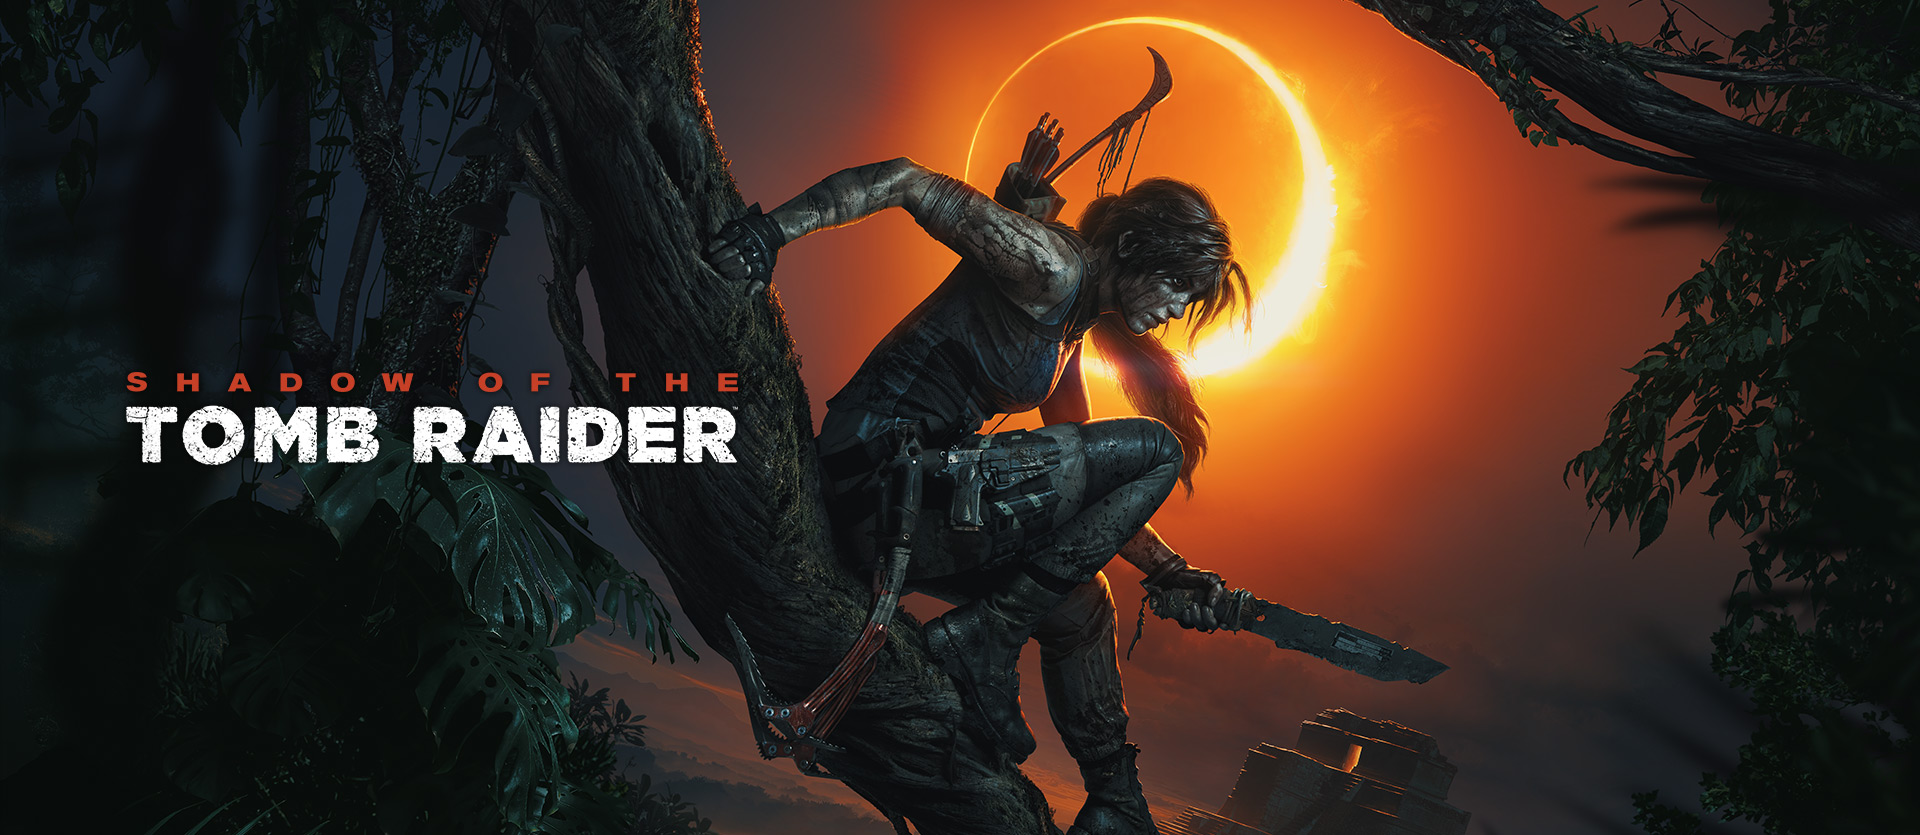 Shadow of the Tomb Raider, Lara Croft seduta sul ramo di un albero con un coltello e un'eclisse sullo sfondo